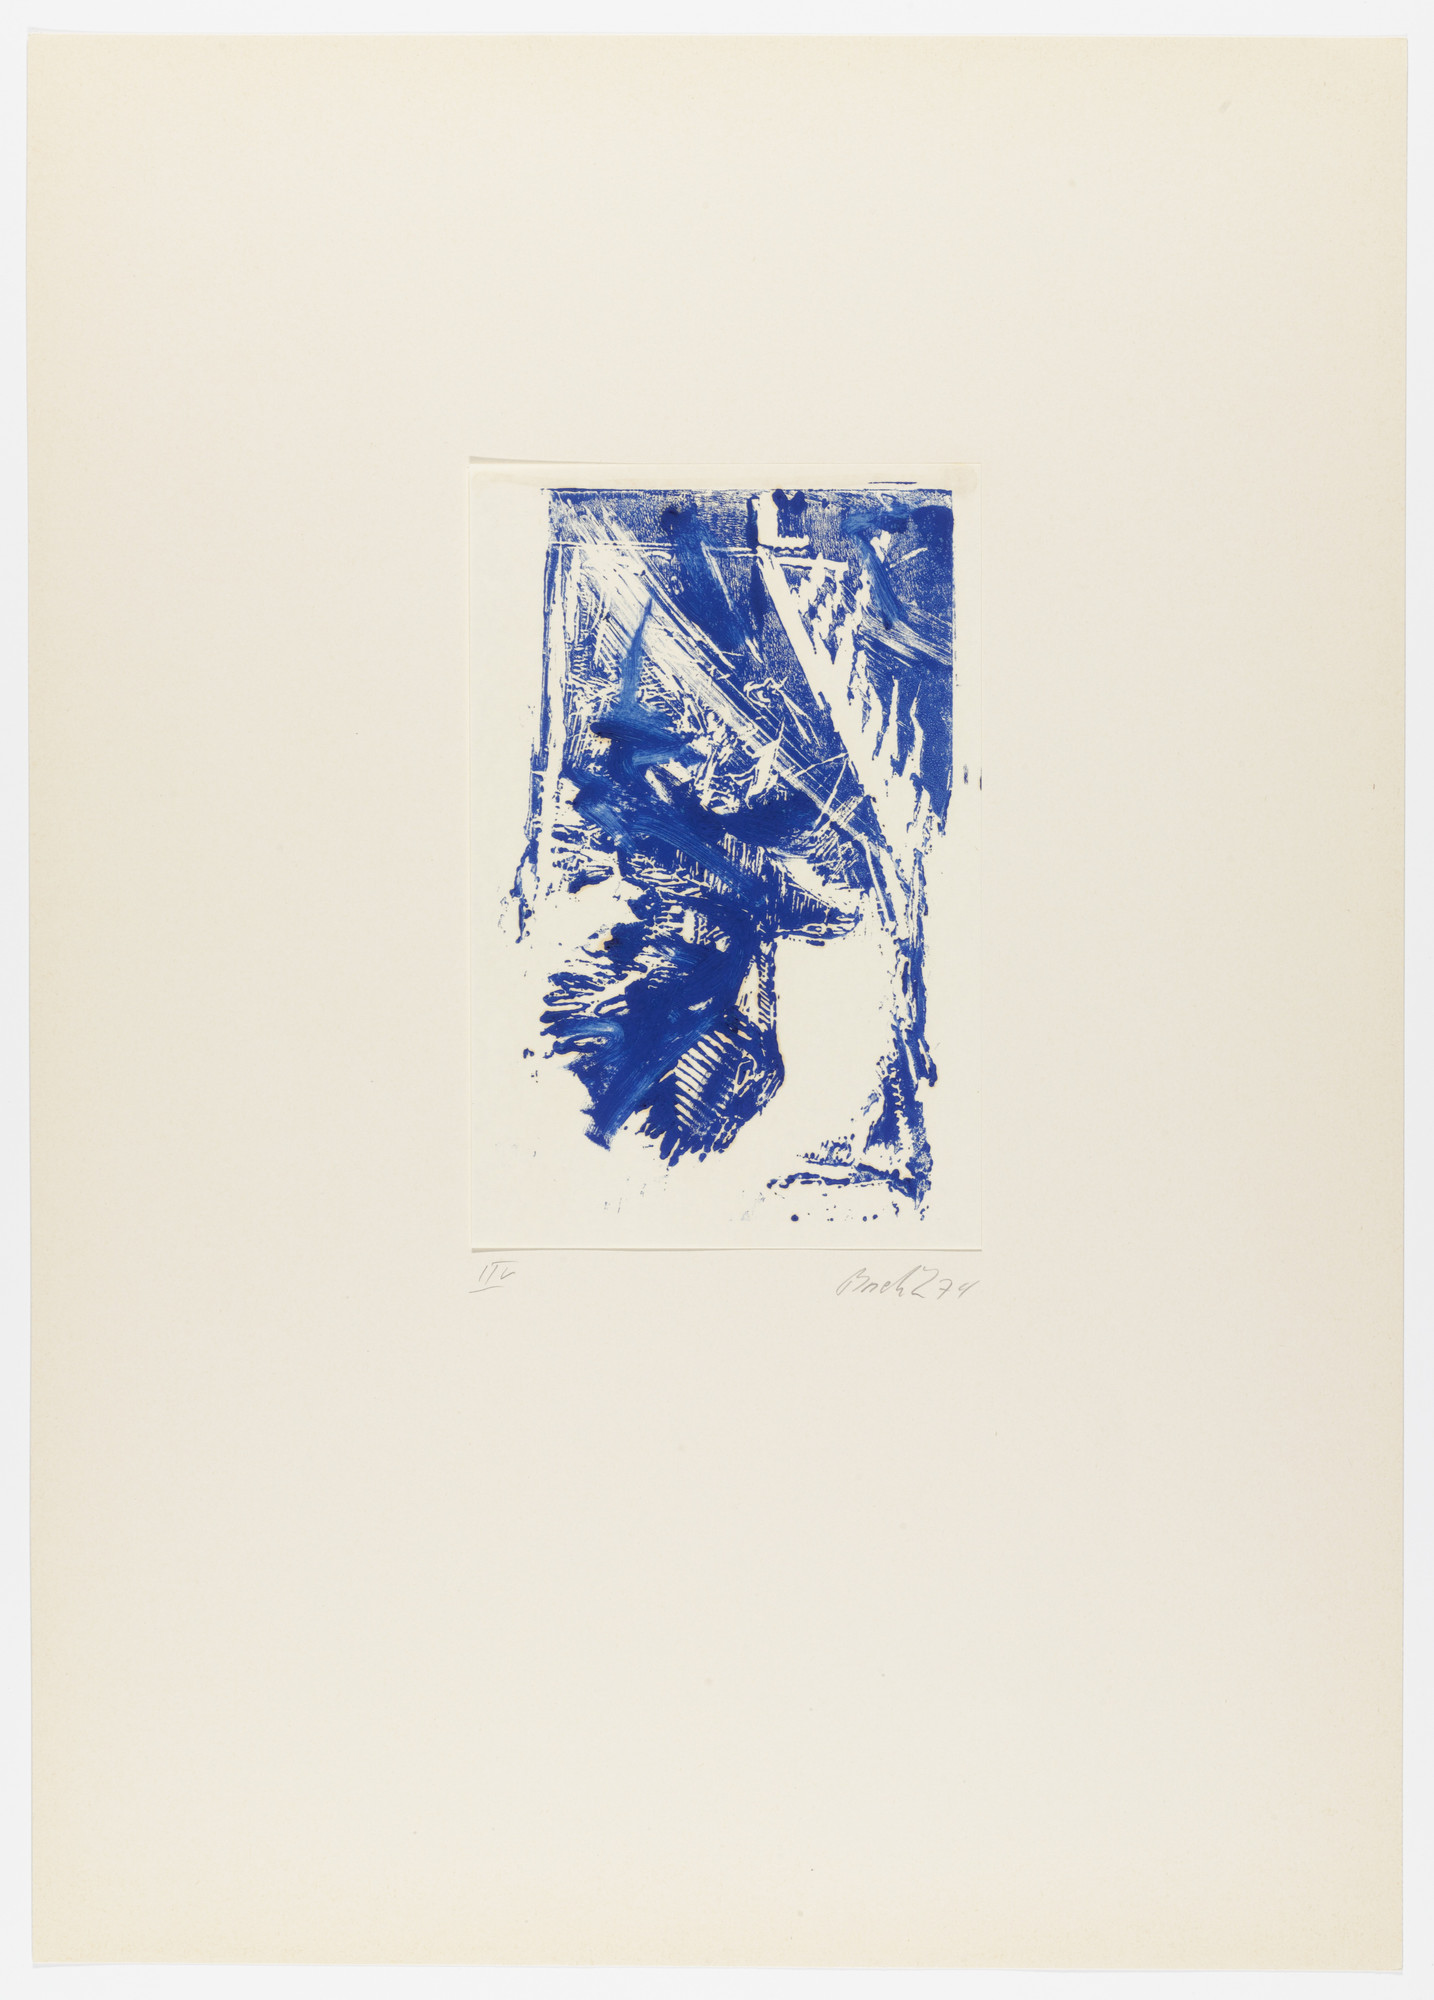 Georg Baselitz. Untitled from Eagle (Adler). 1974, published 1975